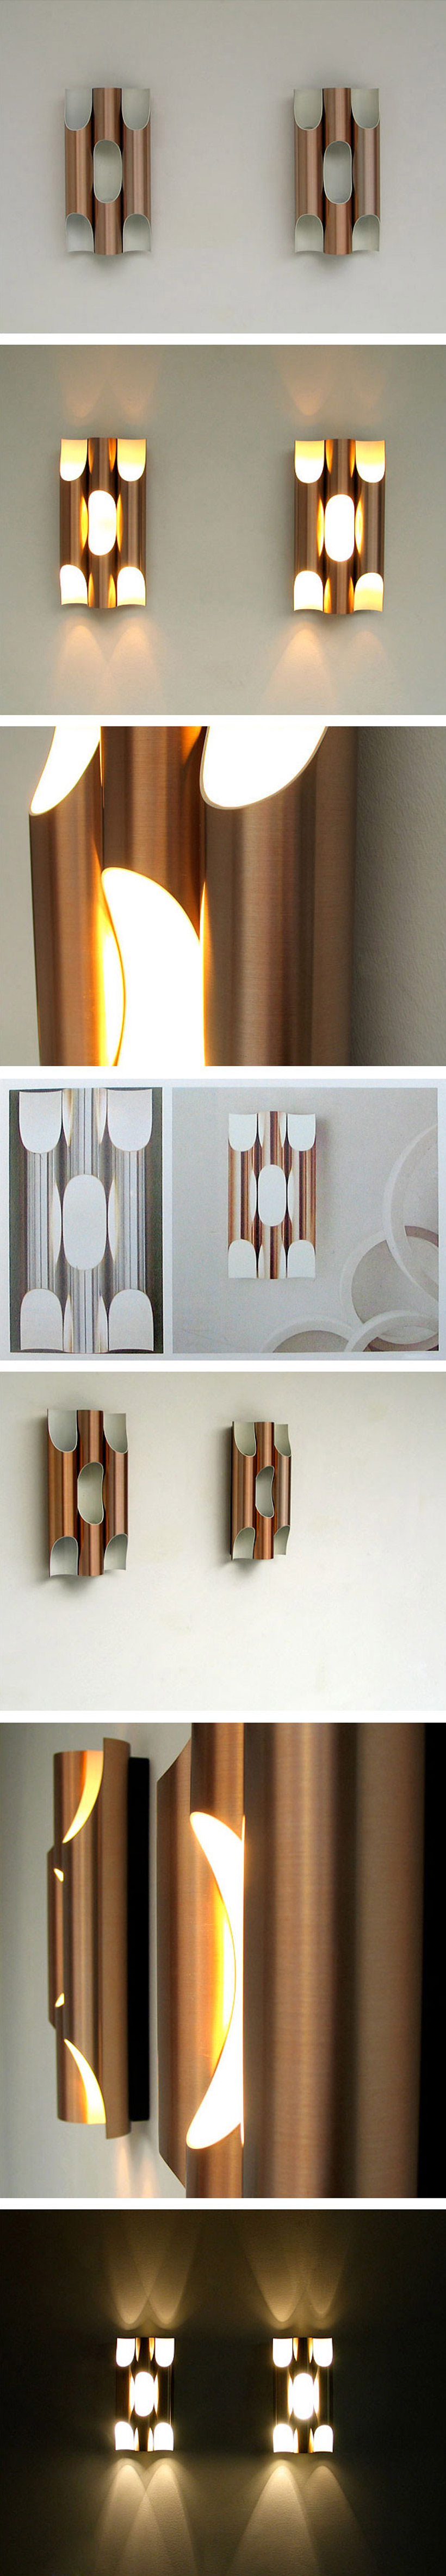 Maija Liisa Komulainen Pair of Raak Fuga organ sconces Large